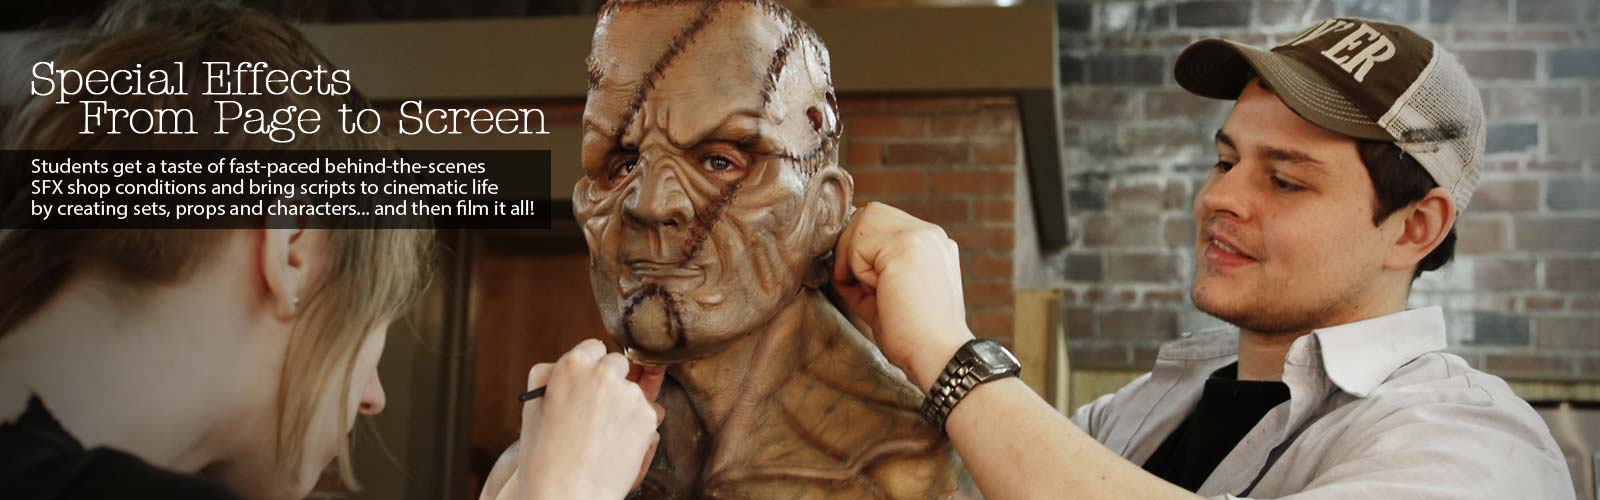 Special effects makeup jobs